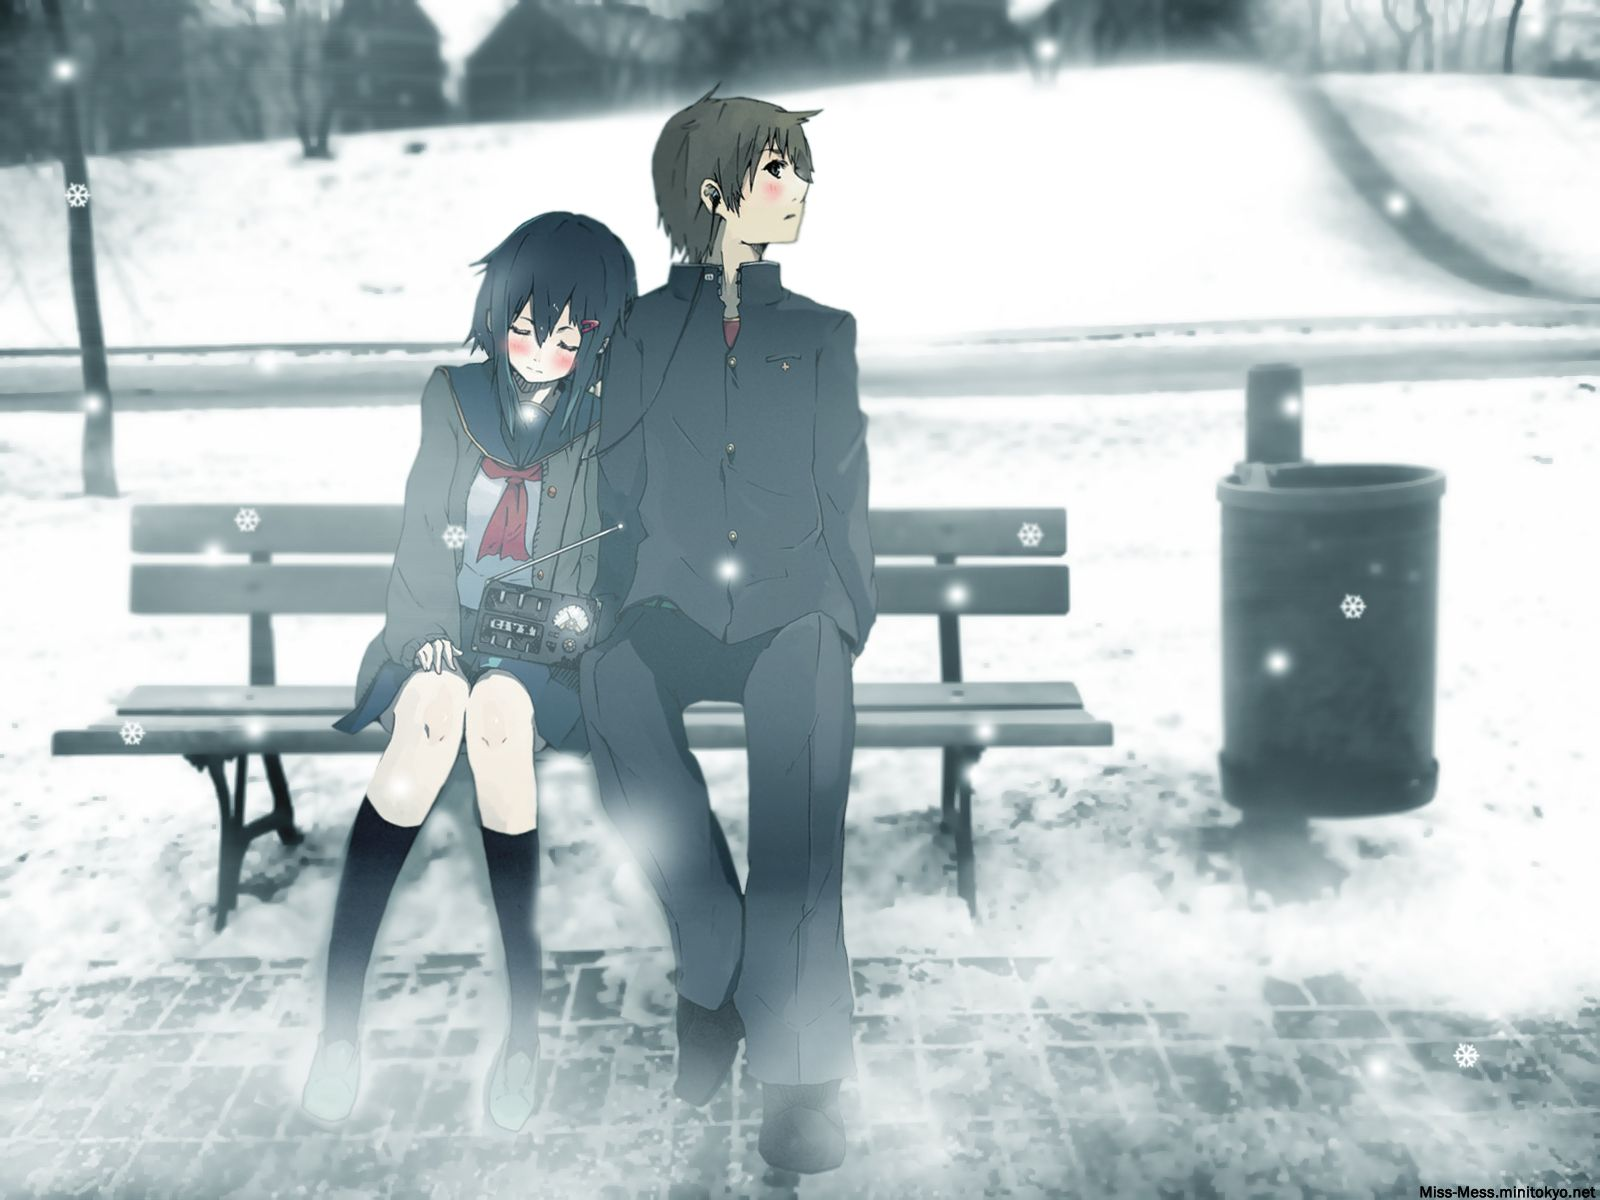 Anime couple sitting on a bench in the snow Meg